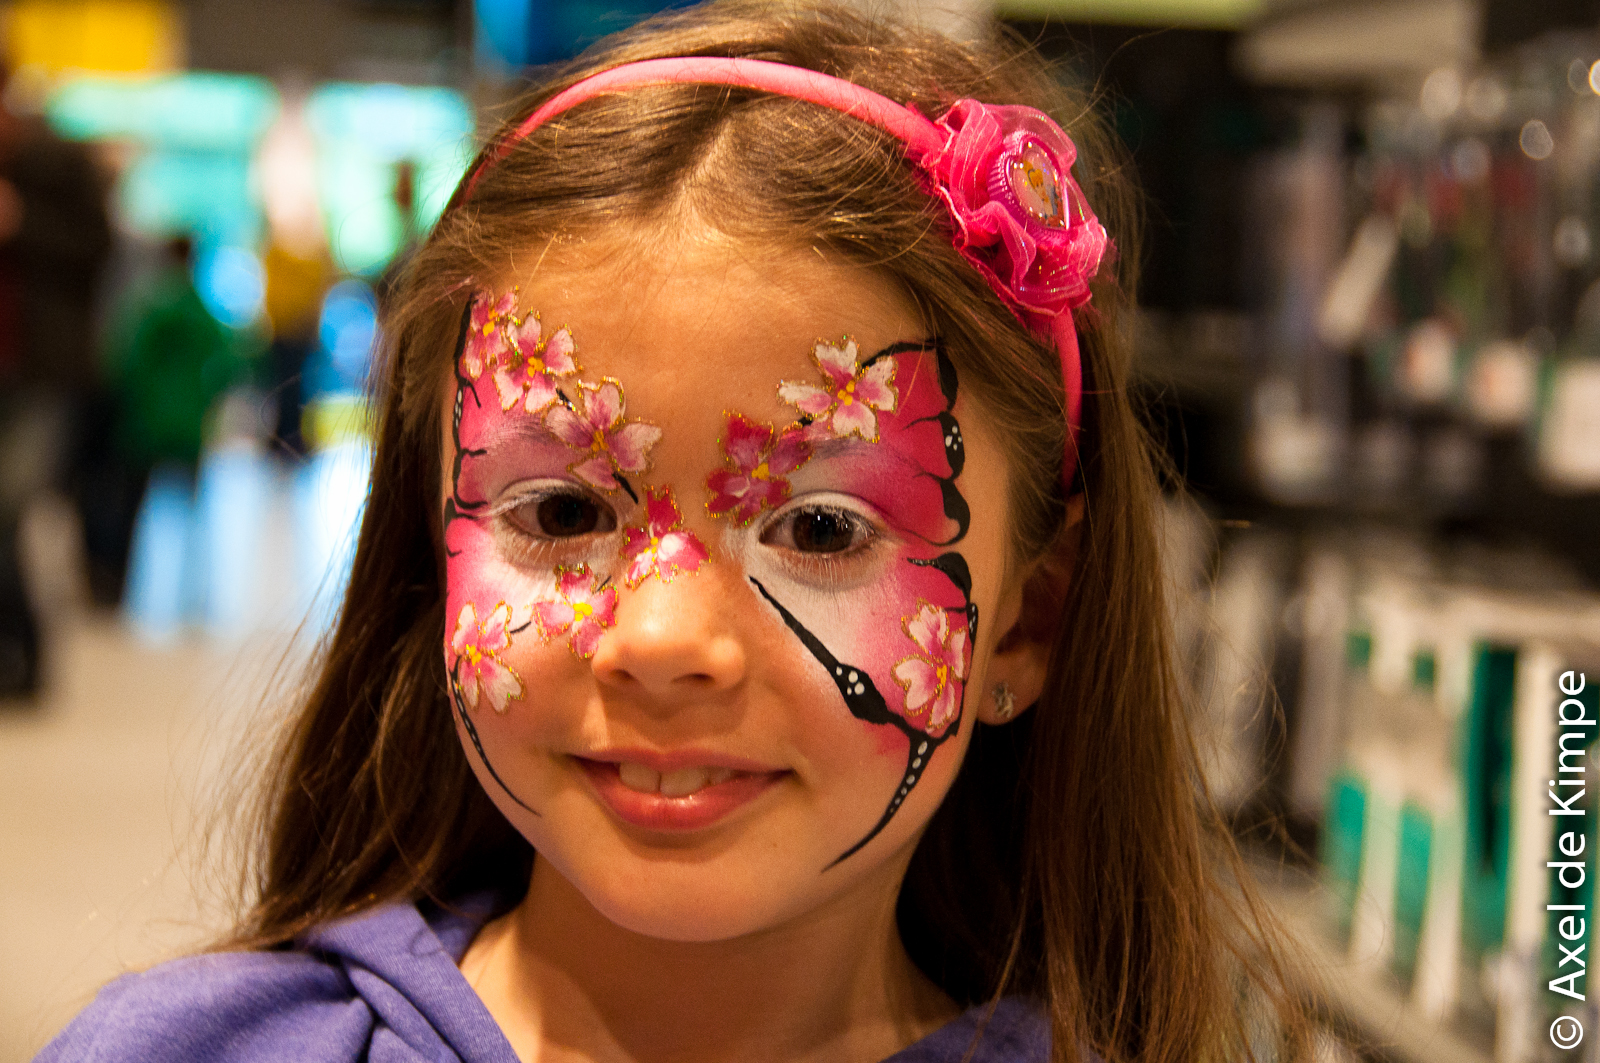 1000 Images About Schminken On Pinterest Face Paintings Easy Painting Designs And Labs